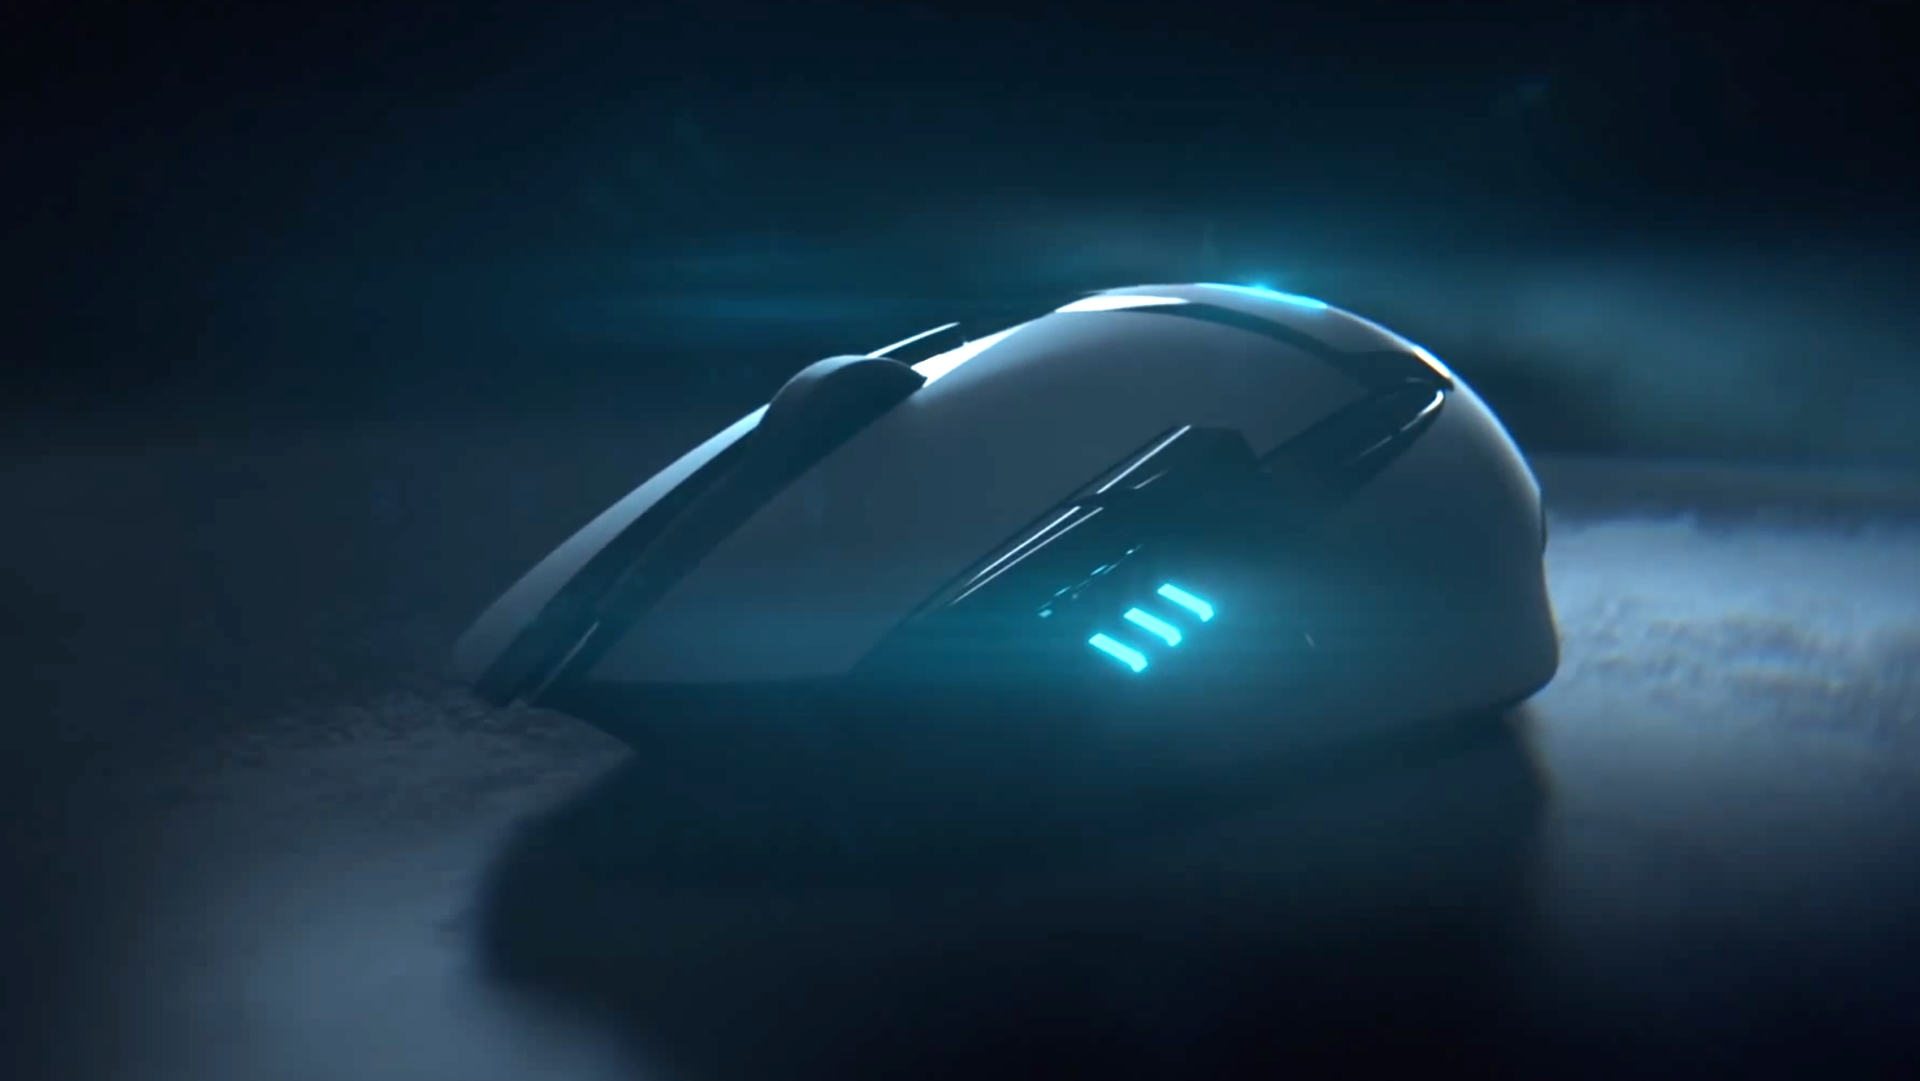 Best gaming mouse – the top mice in 2021